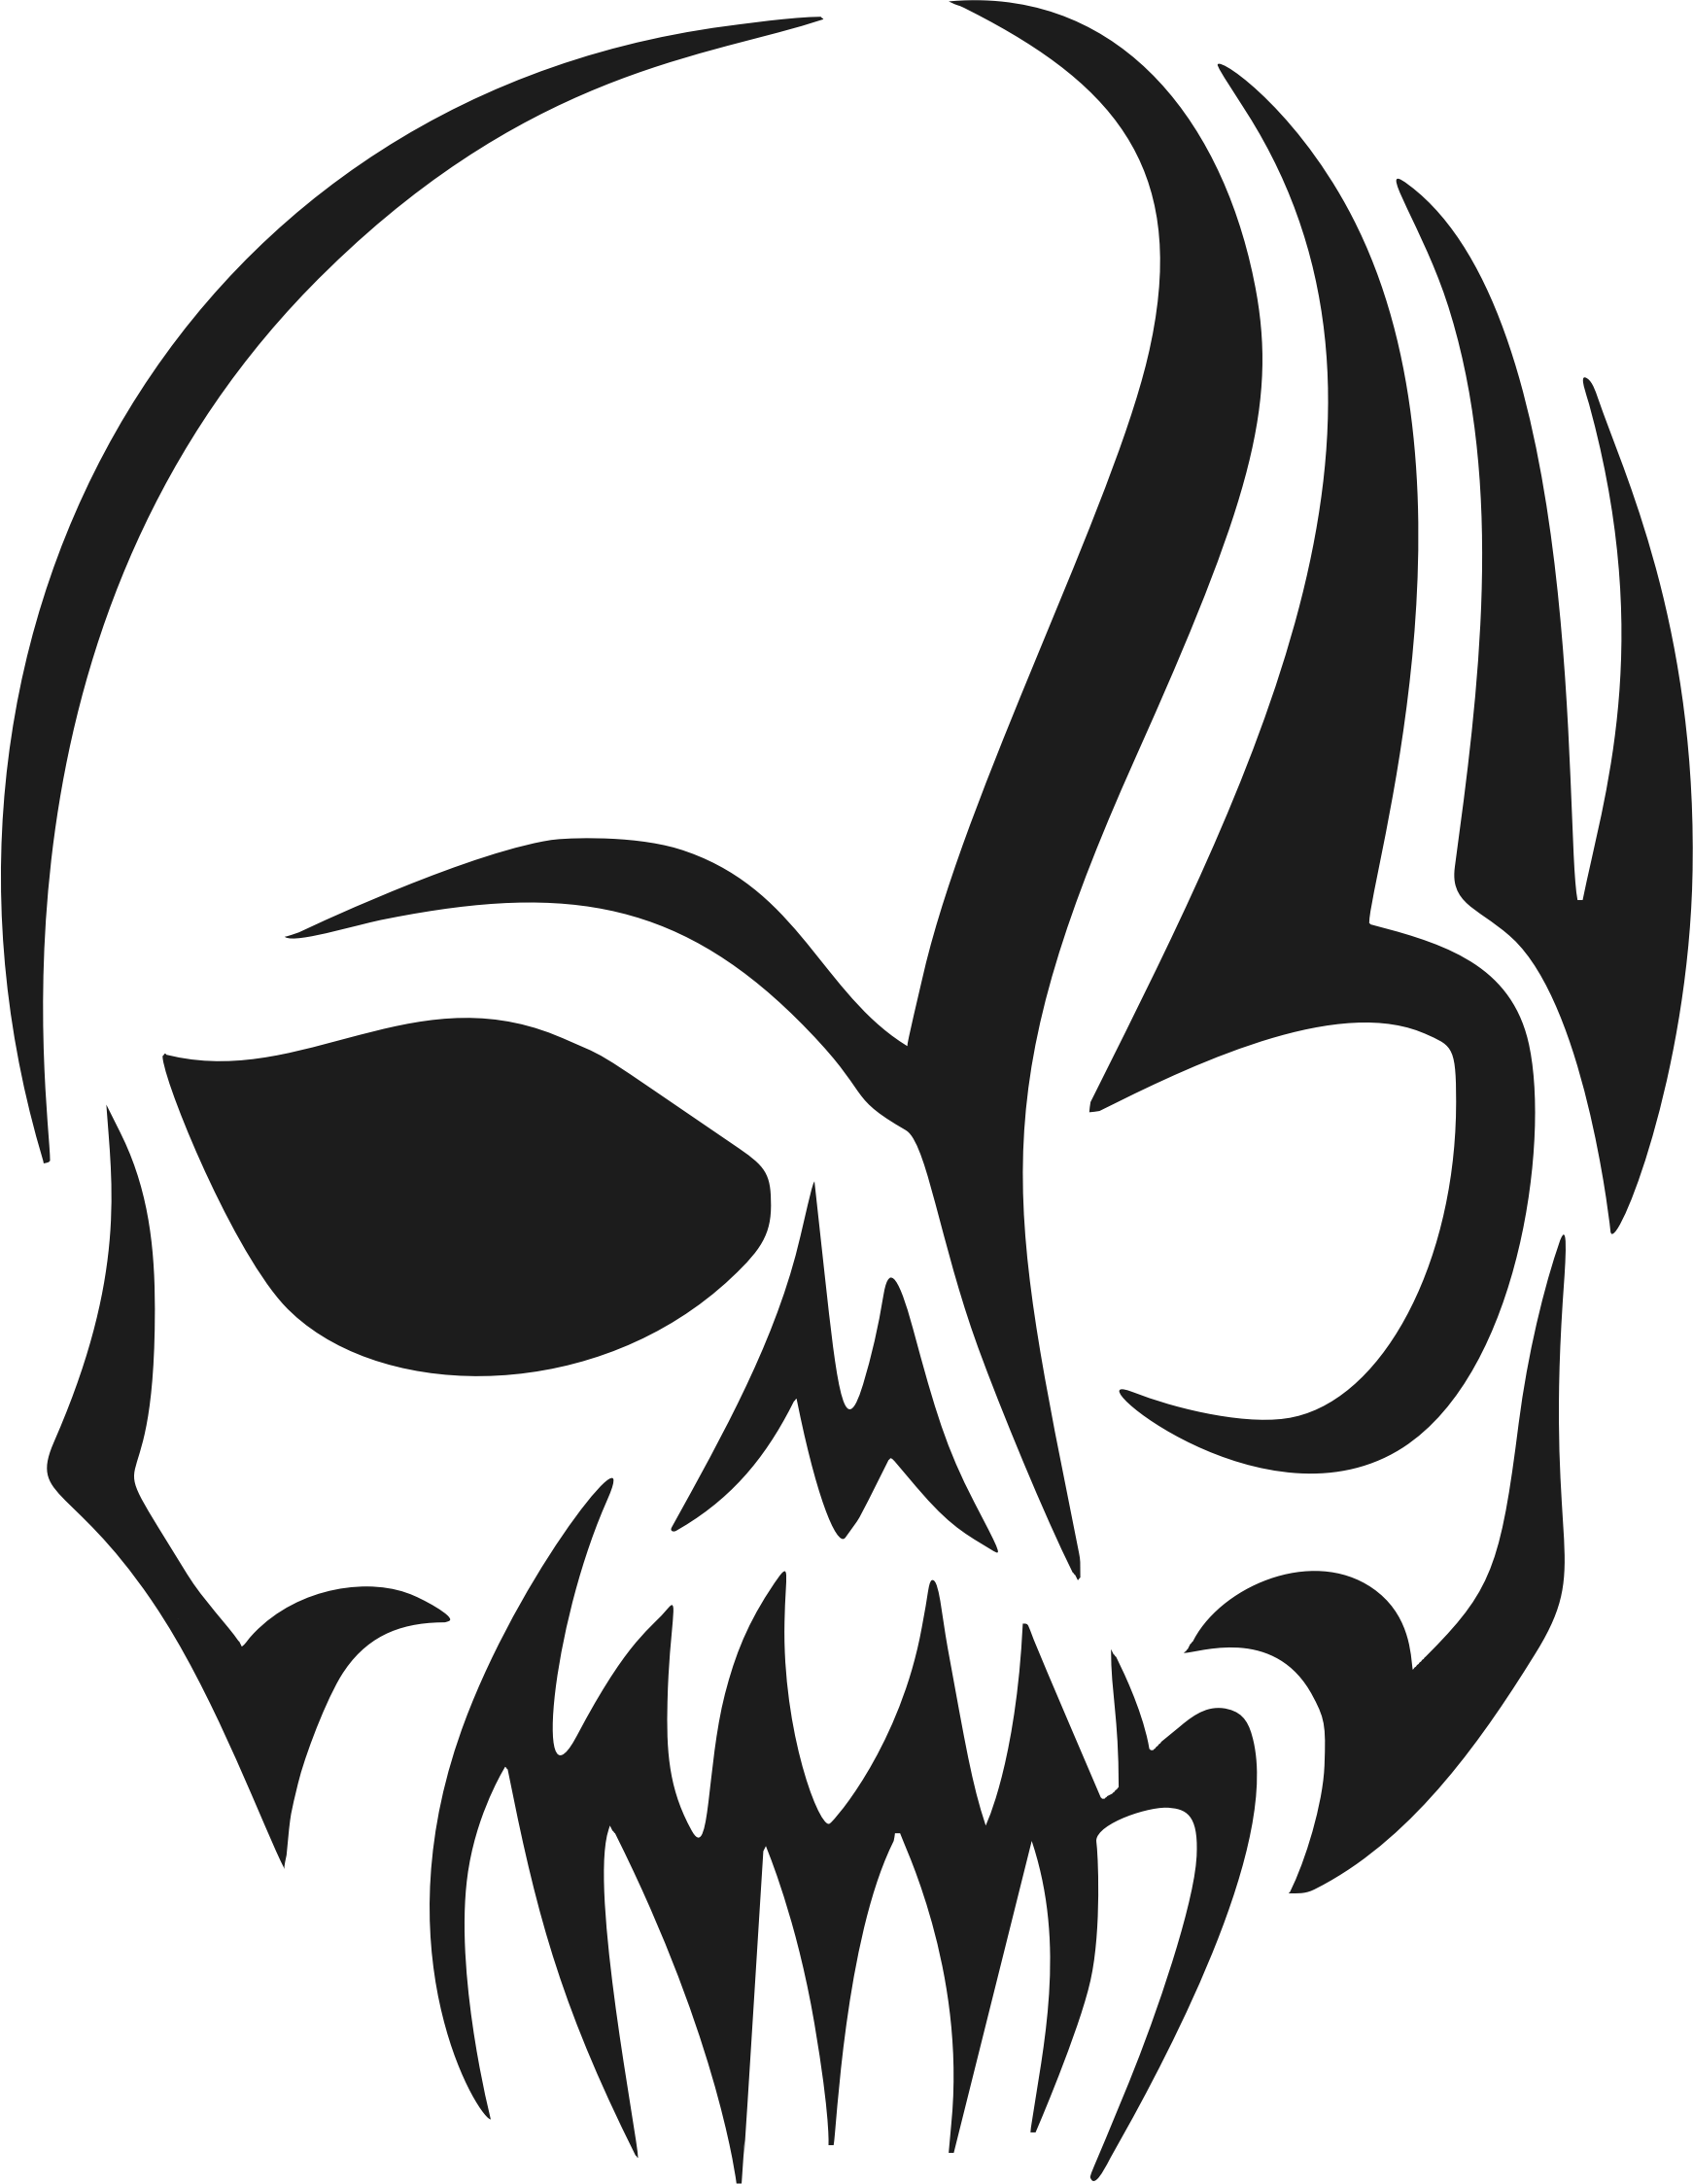 Tribal transparent silhouette. Skull icons png free